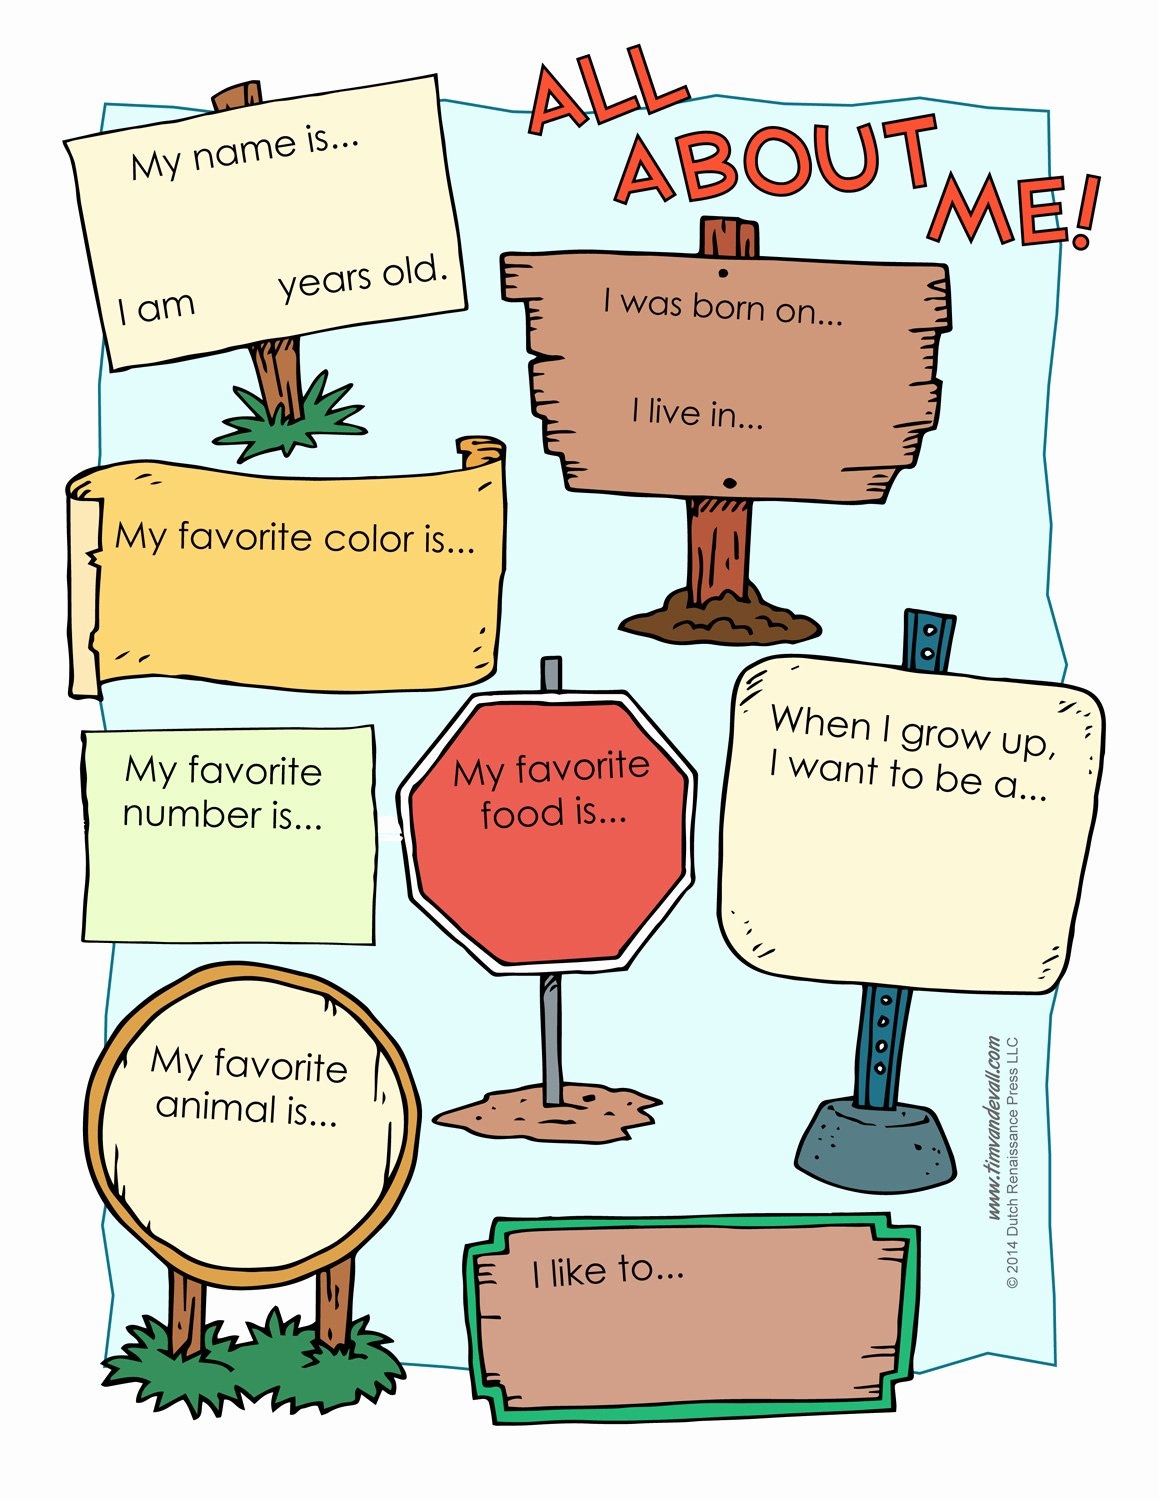 All About Me Worksheet Awesome All About Me Worksheetstake the Pen